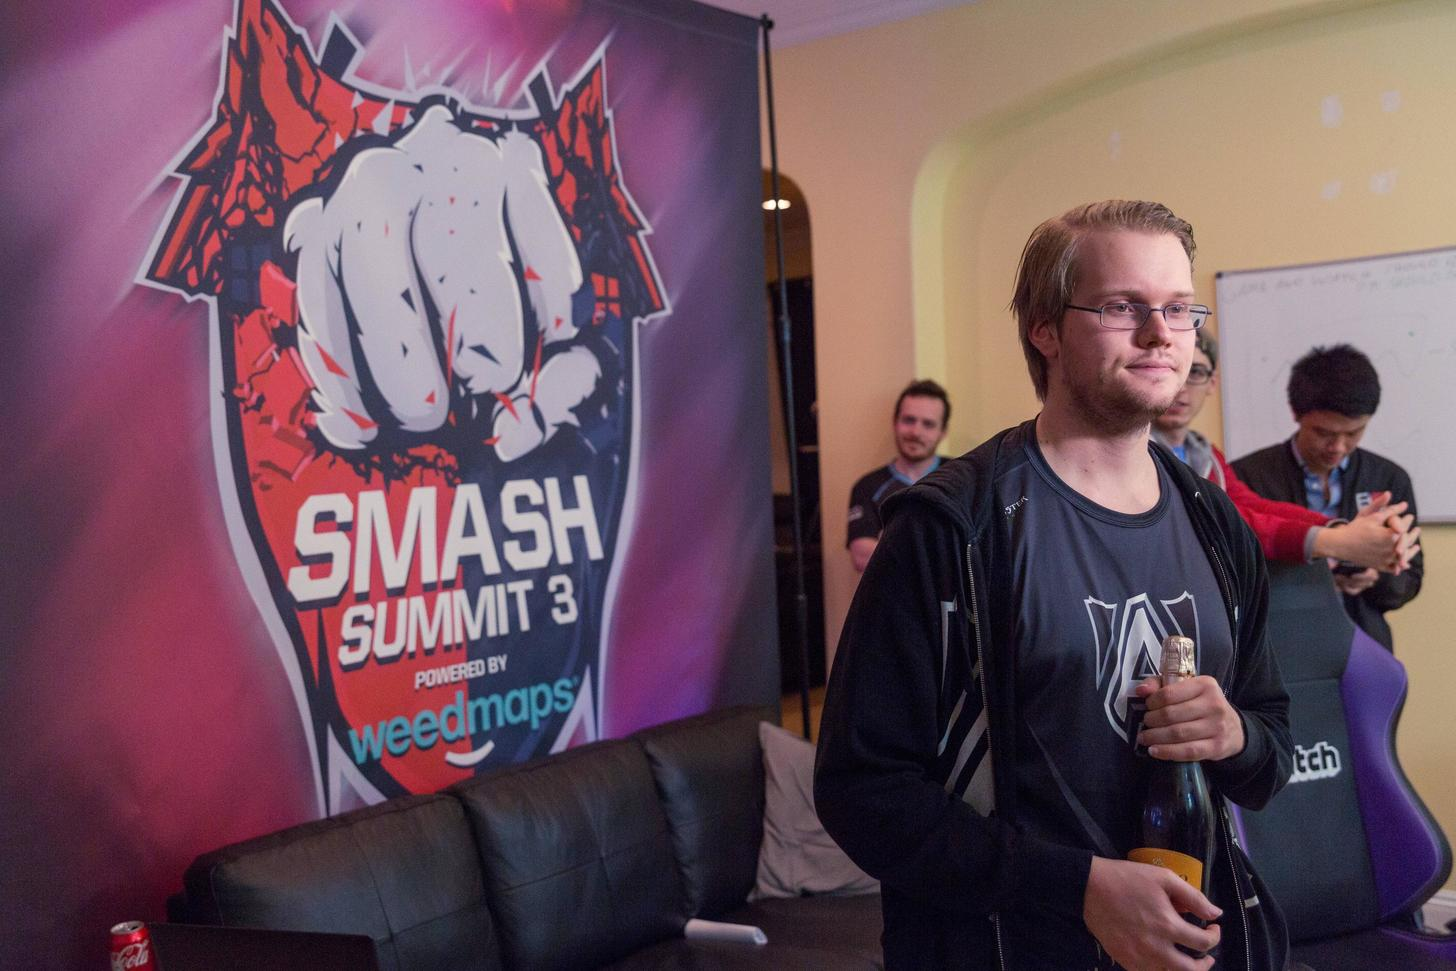 Weedmaps and Smash Summit (Photo: Weedmaps)